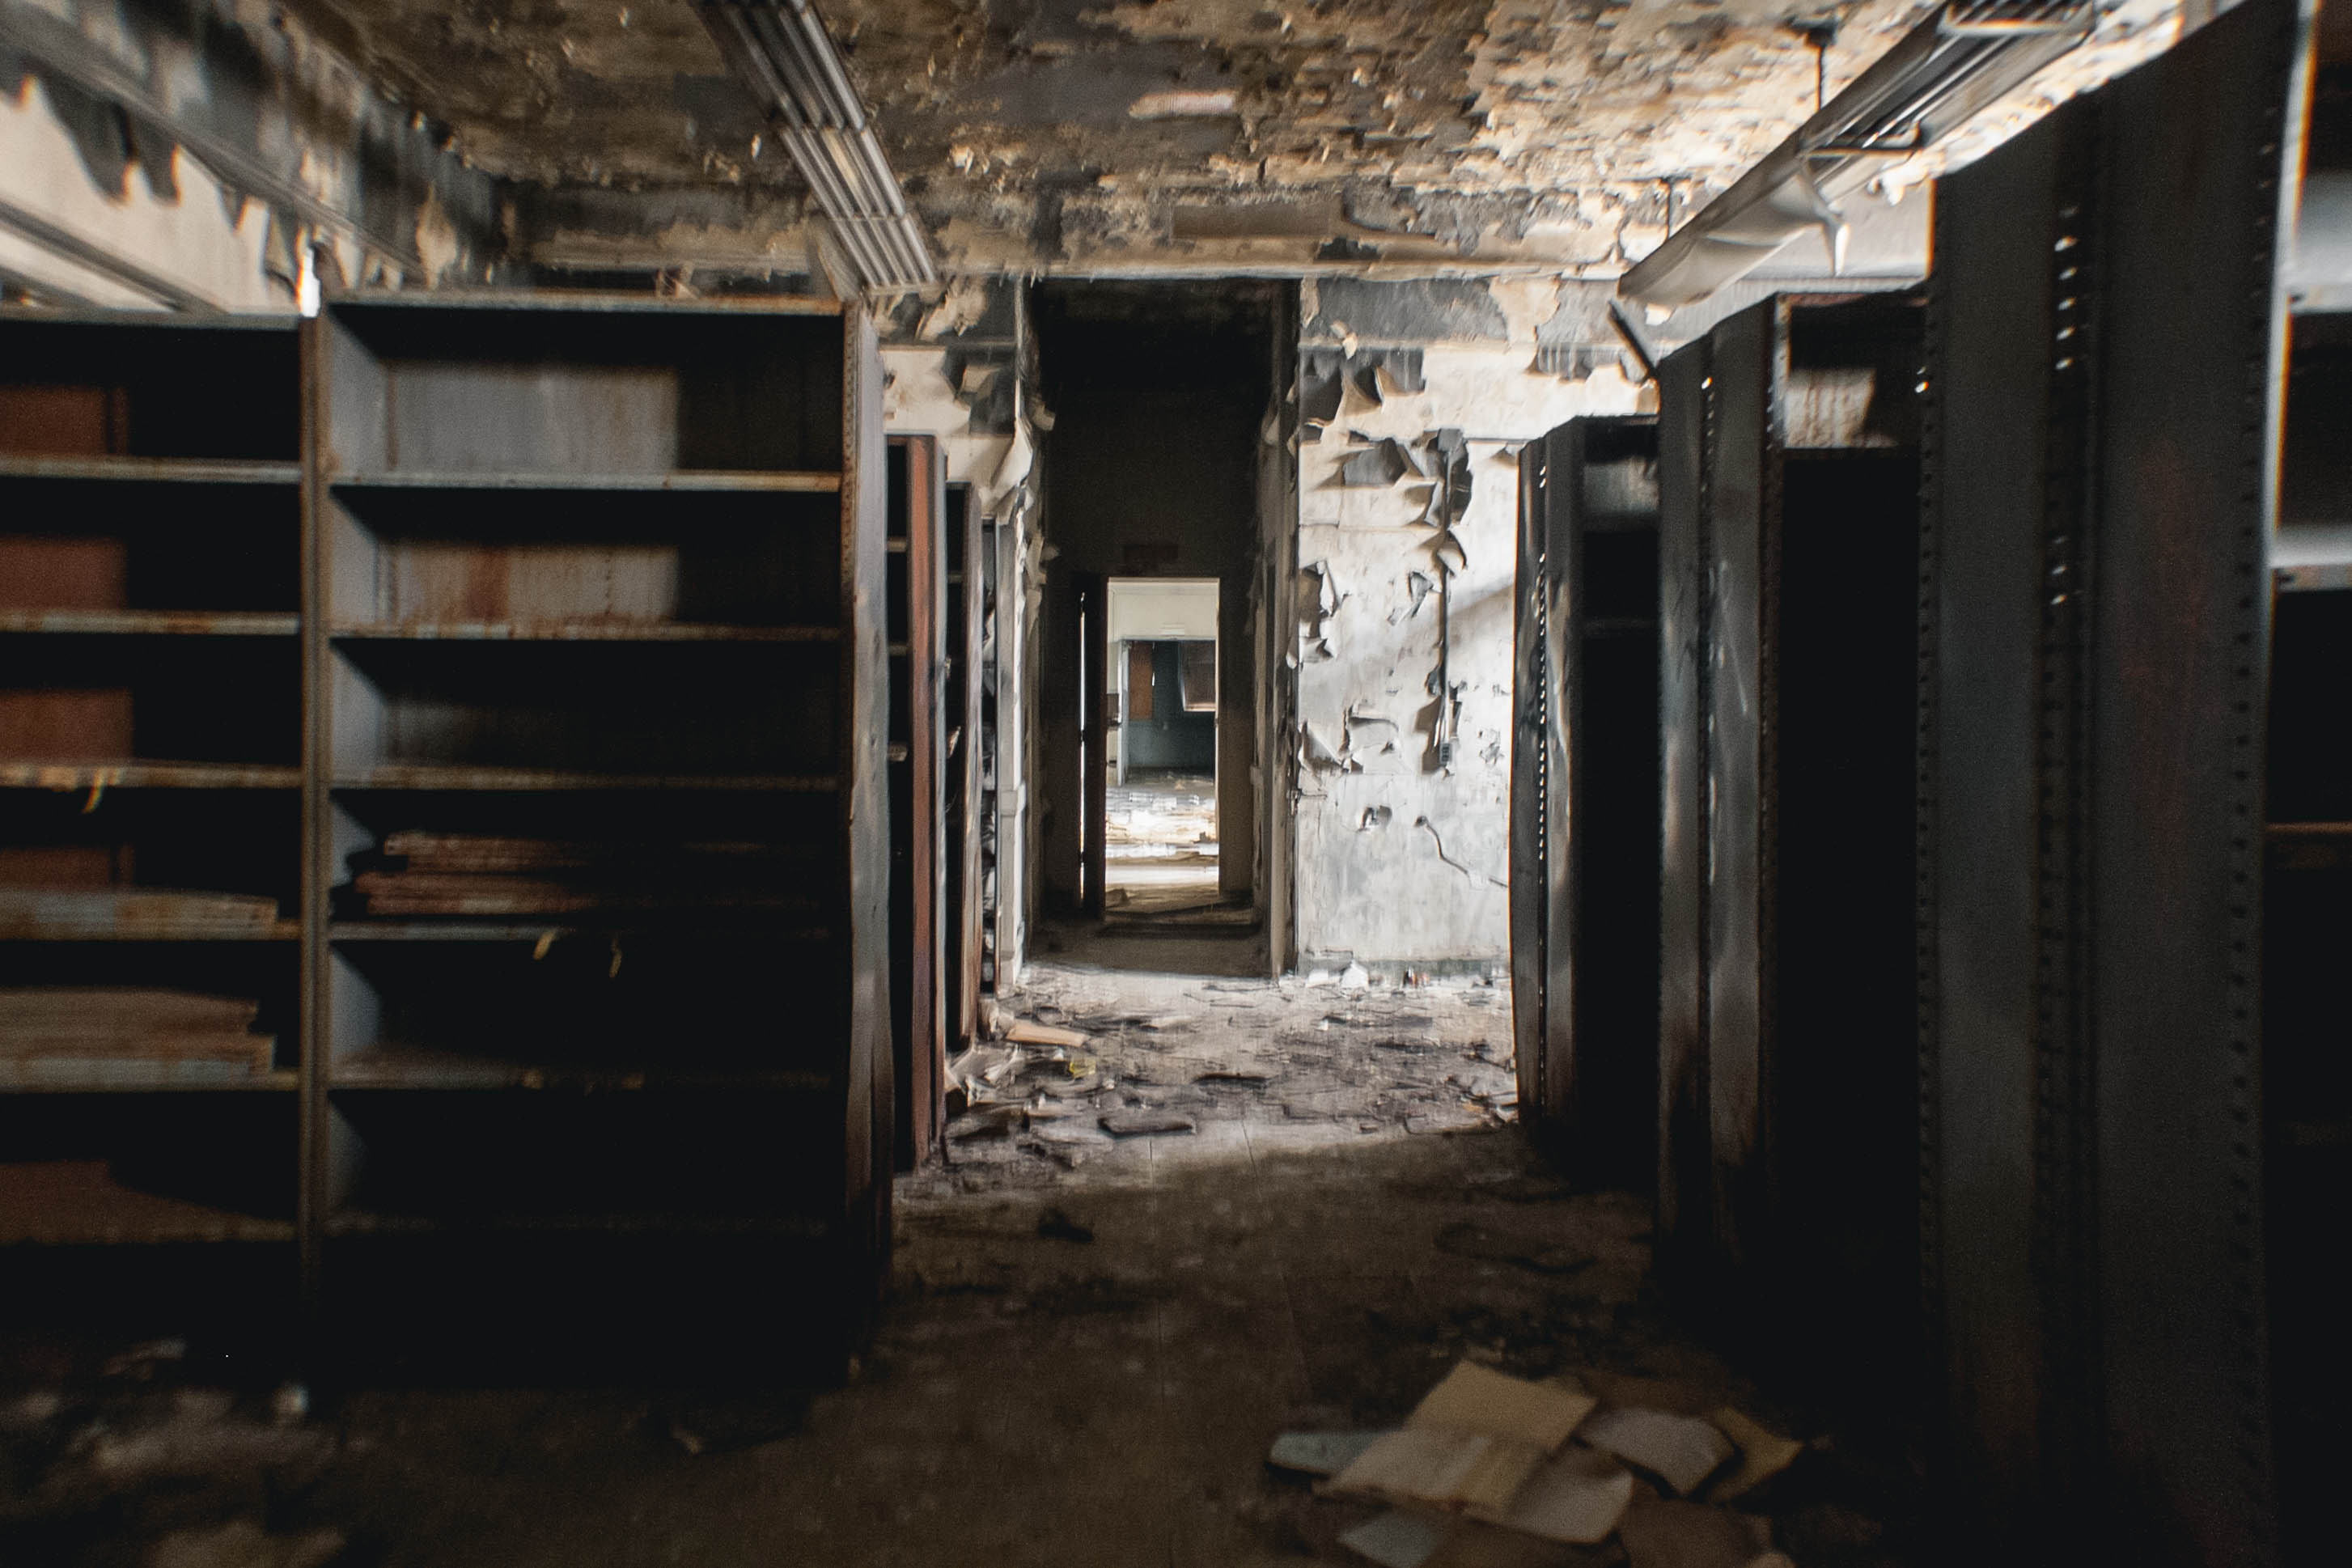 """This is inside the fire-damaged building. Walking around I could see damaged office equipment, paperwork, and books. Further in I found a room that was completely destroyed. There were books everywhere. All the windows were boarded shut and the floors and walls creaked with every step. I decided to leave because I was afraid the room would collapse."""